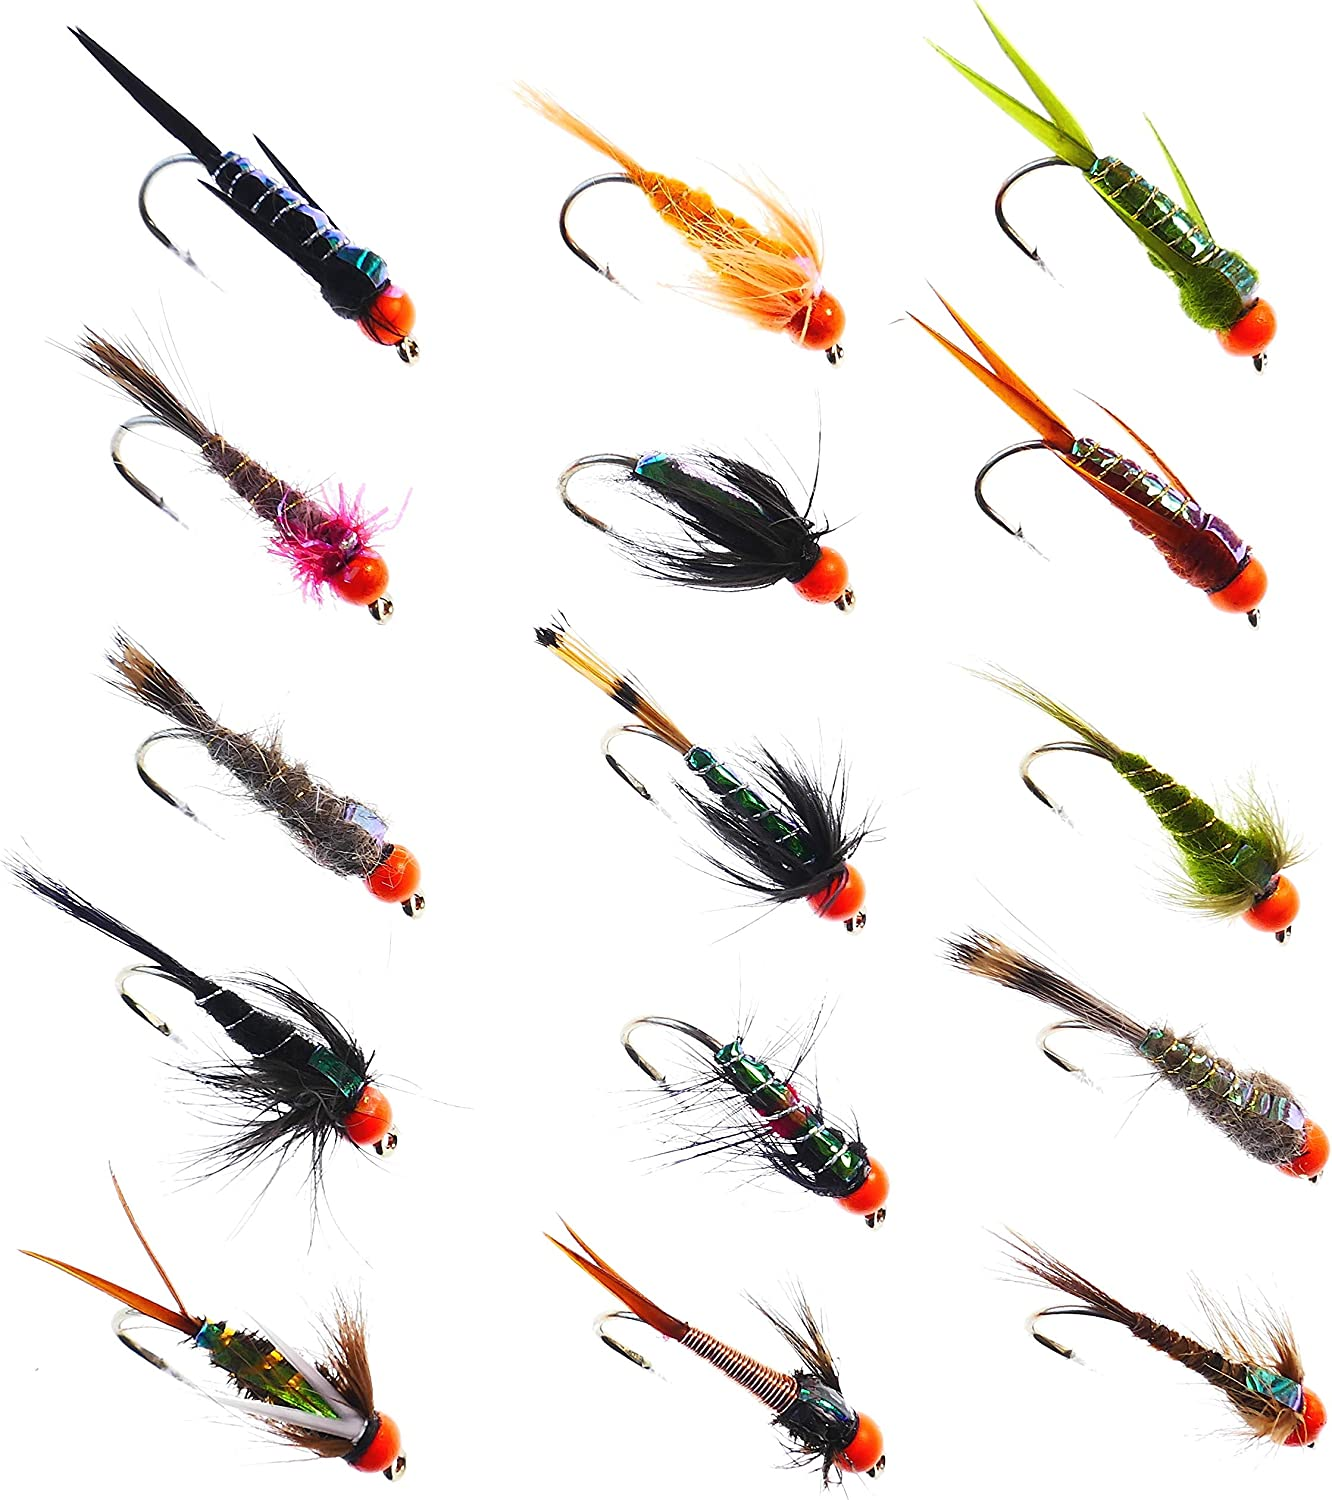 By Arc Fishing Flies UK Trout Flies 33J Black Spider Hotheads # 6 to 18